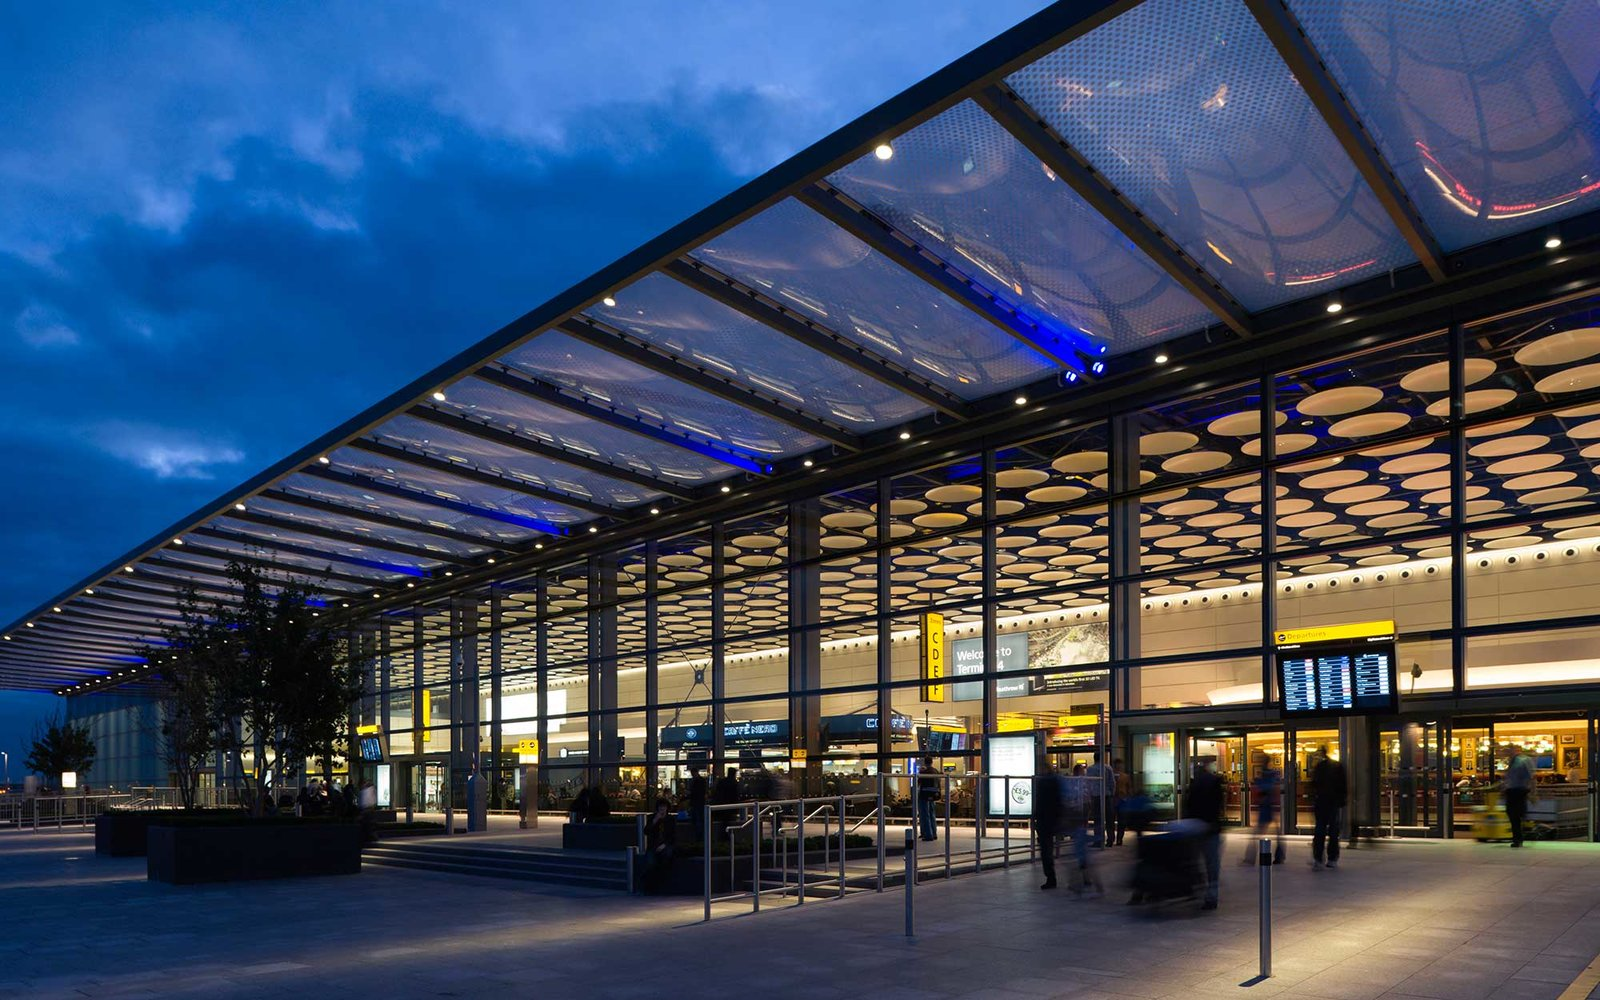 Heathrow Airport exterior night